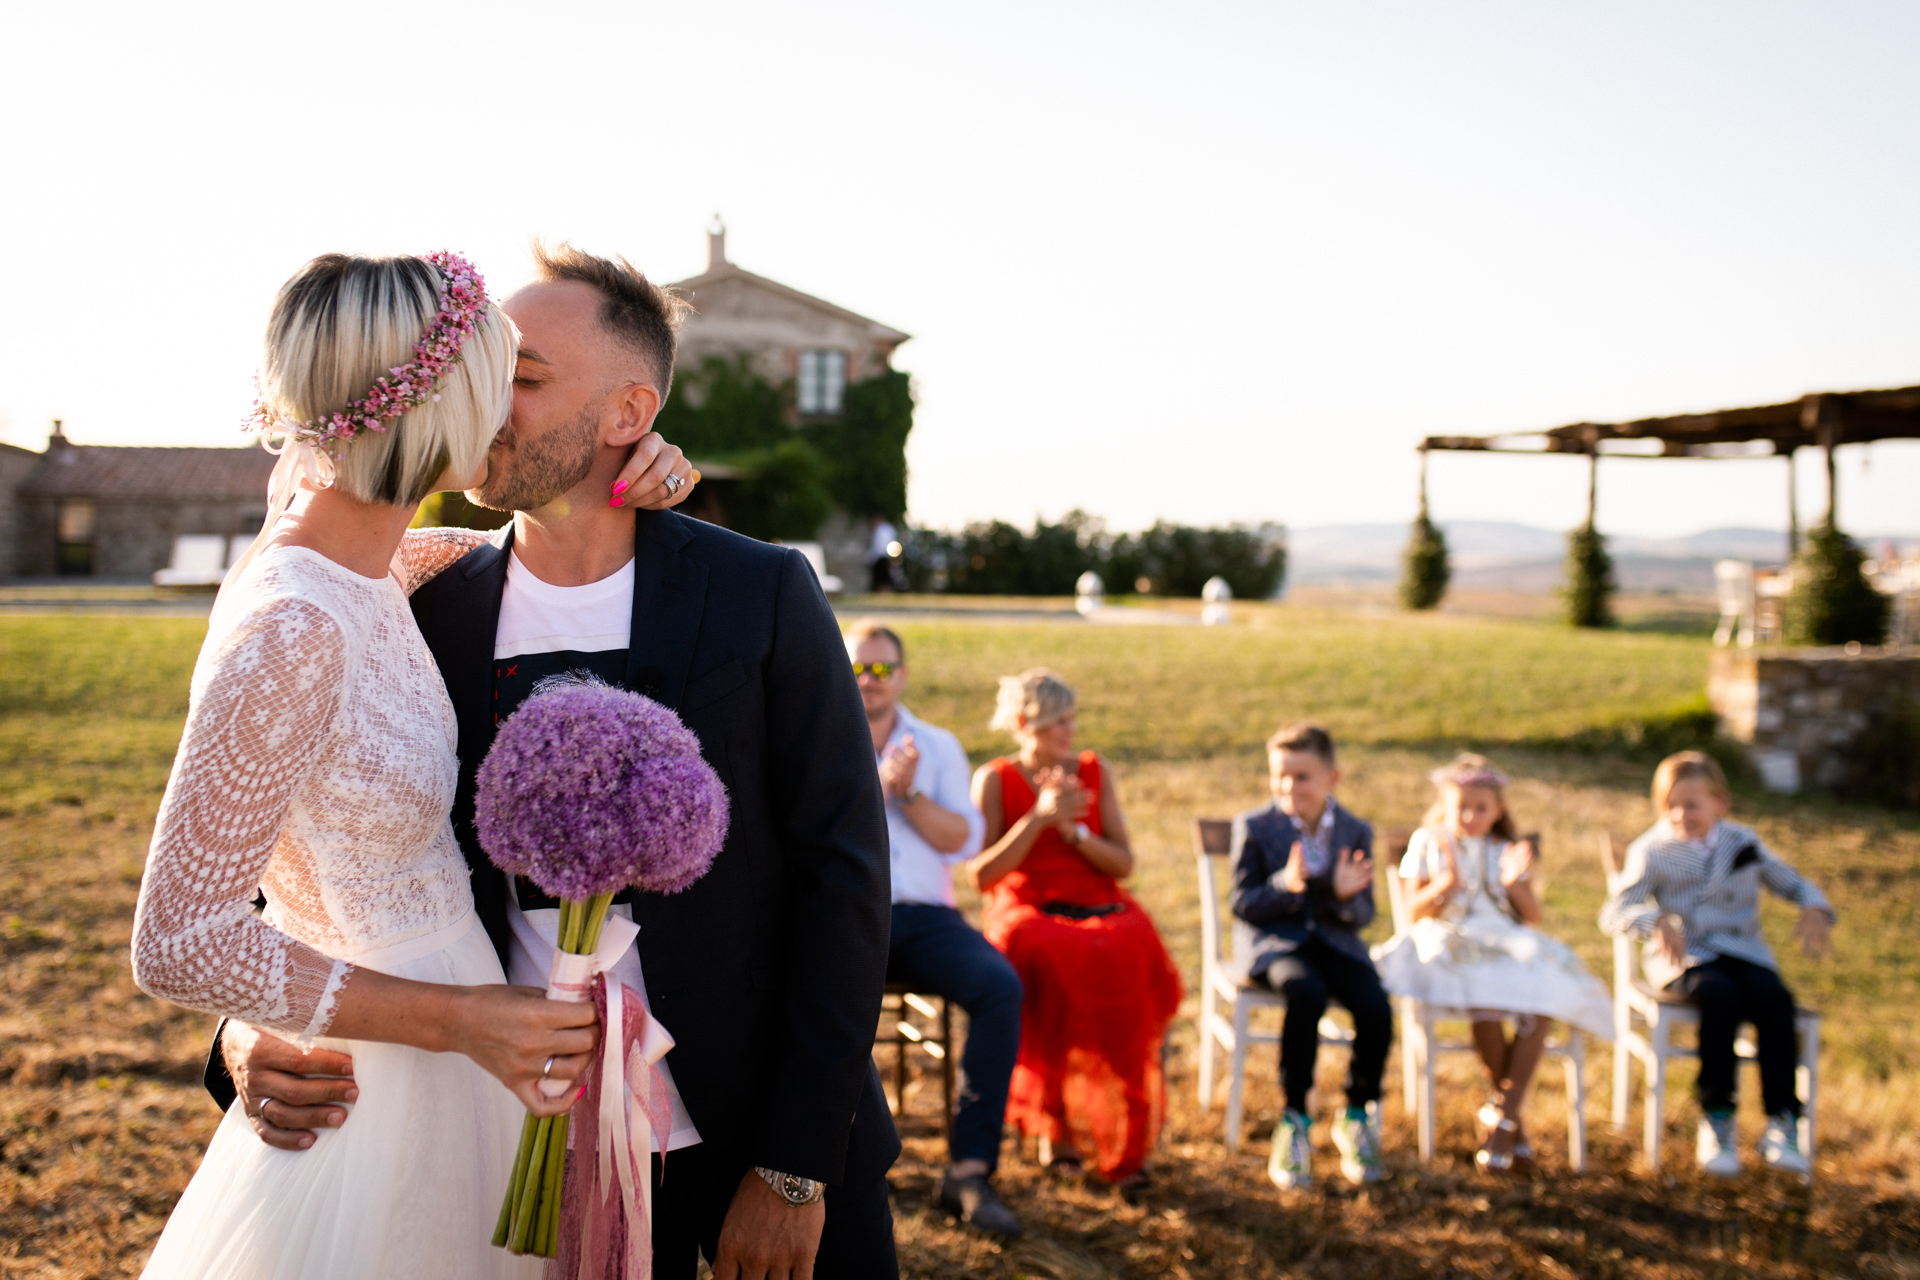 Italy Elopement Photography | The bride and groom's kiss at the end of the outdoor ceremony at the farmhouse venue.